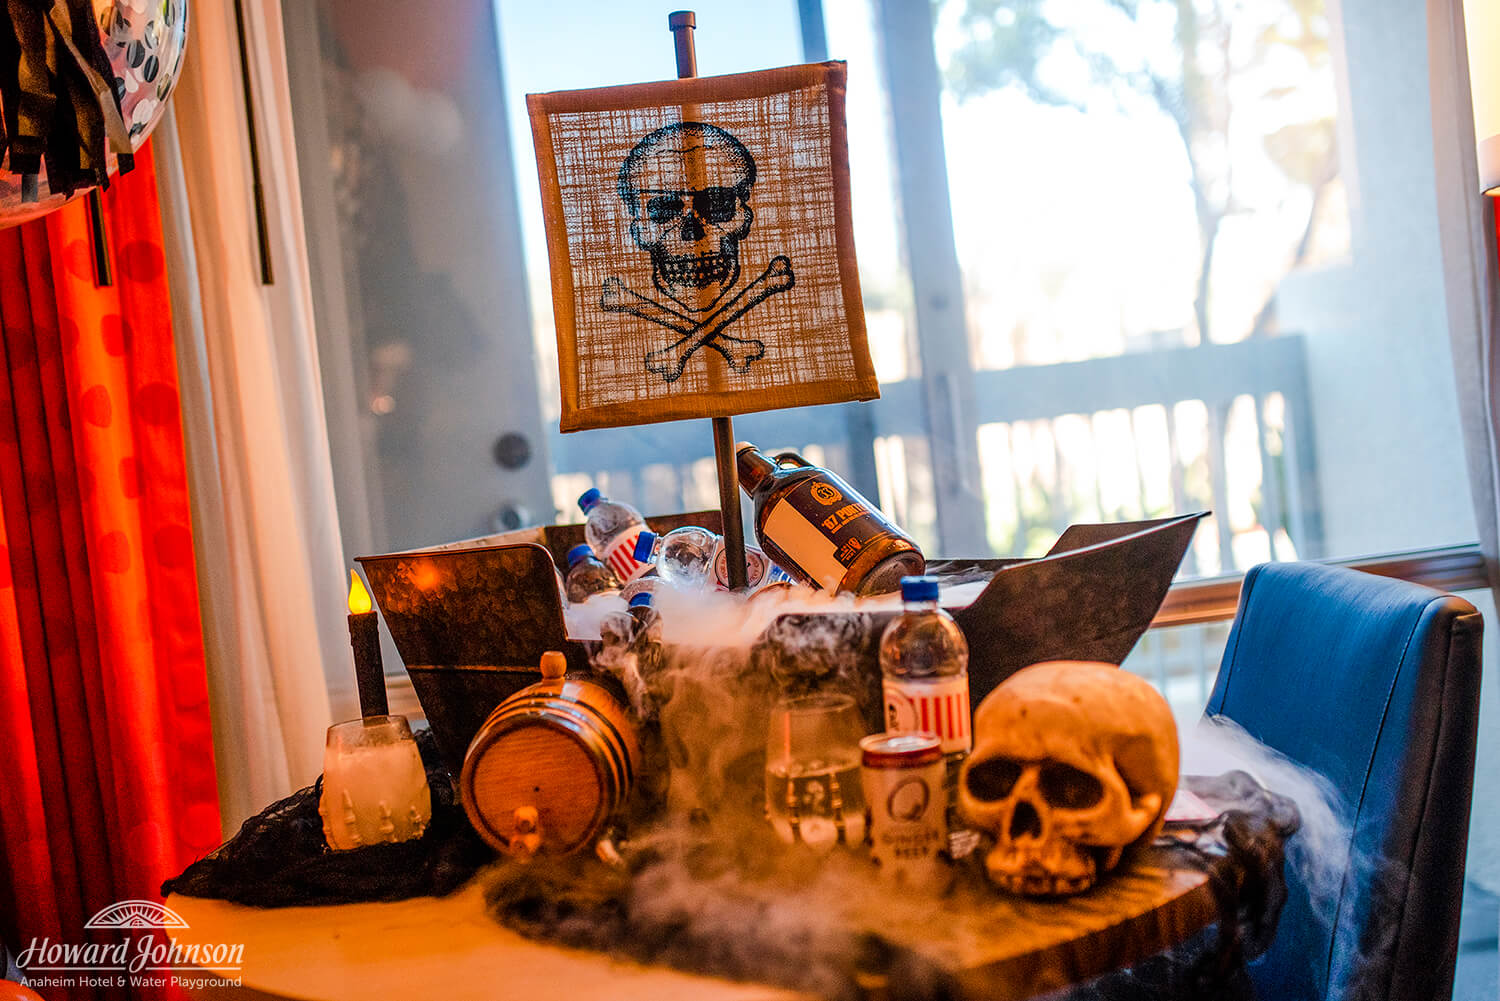 a pirate themed display features beverages on a table